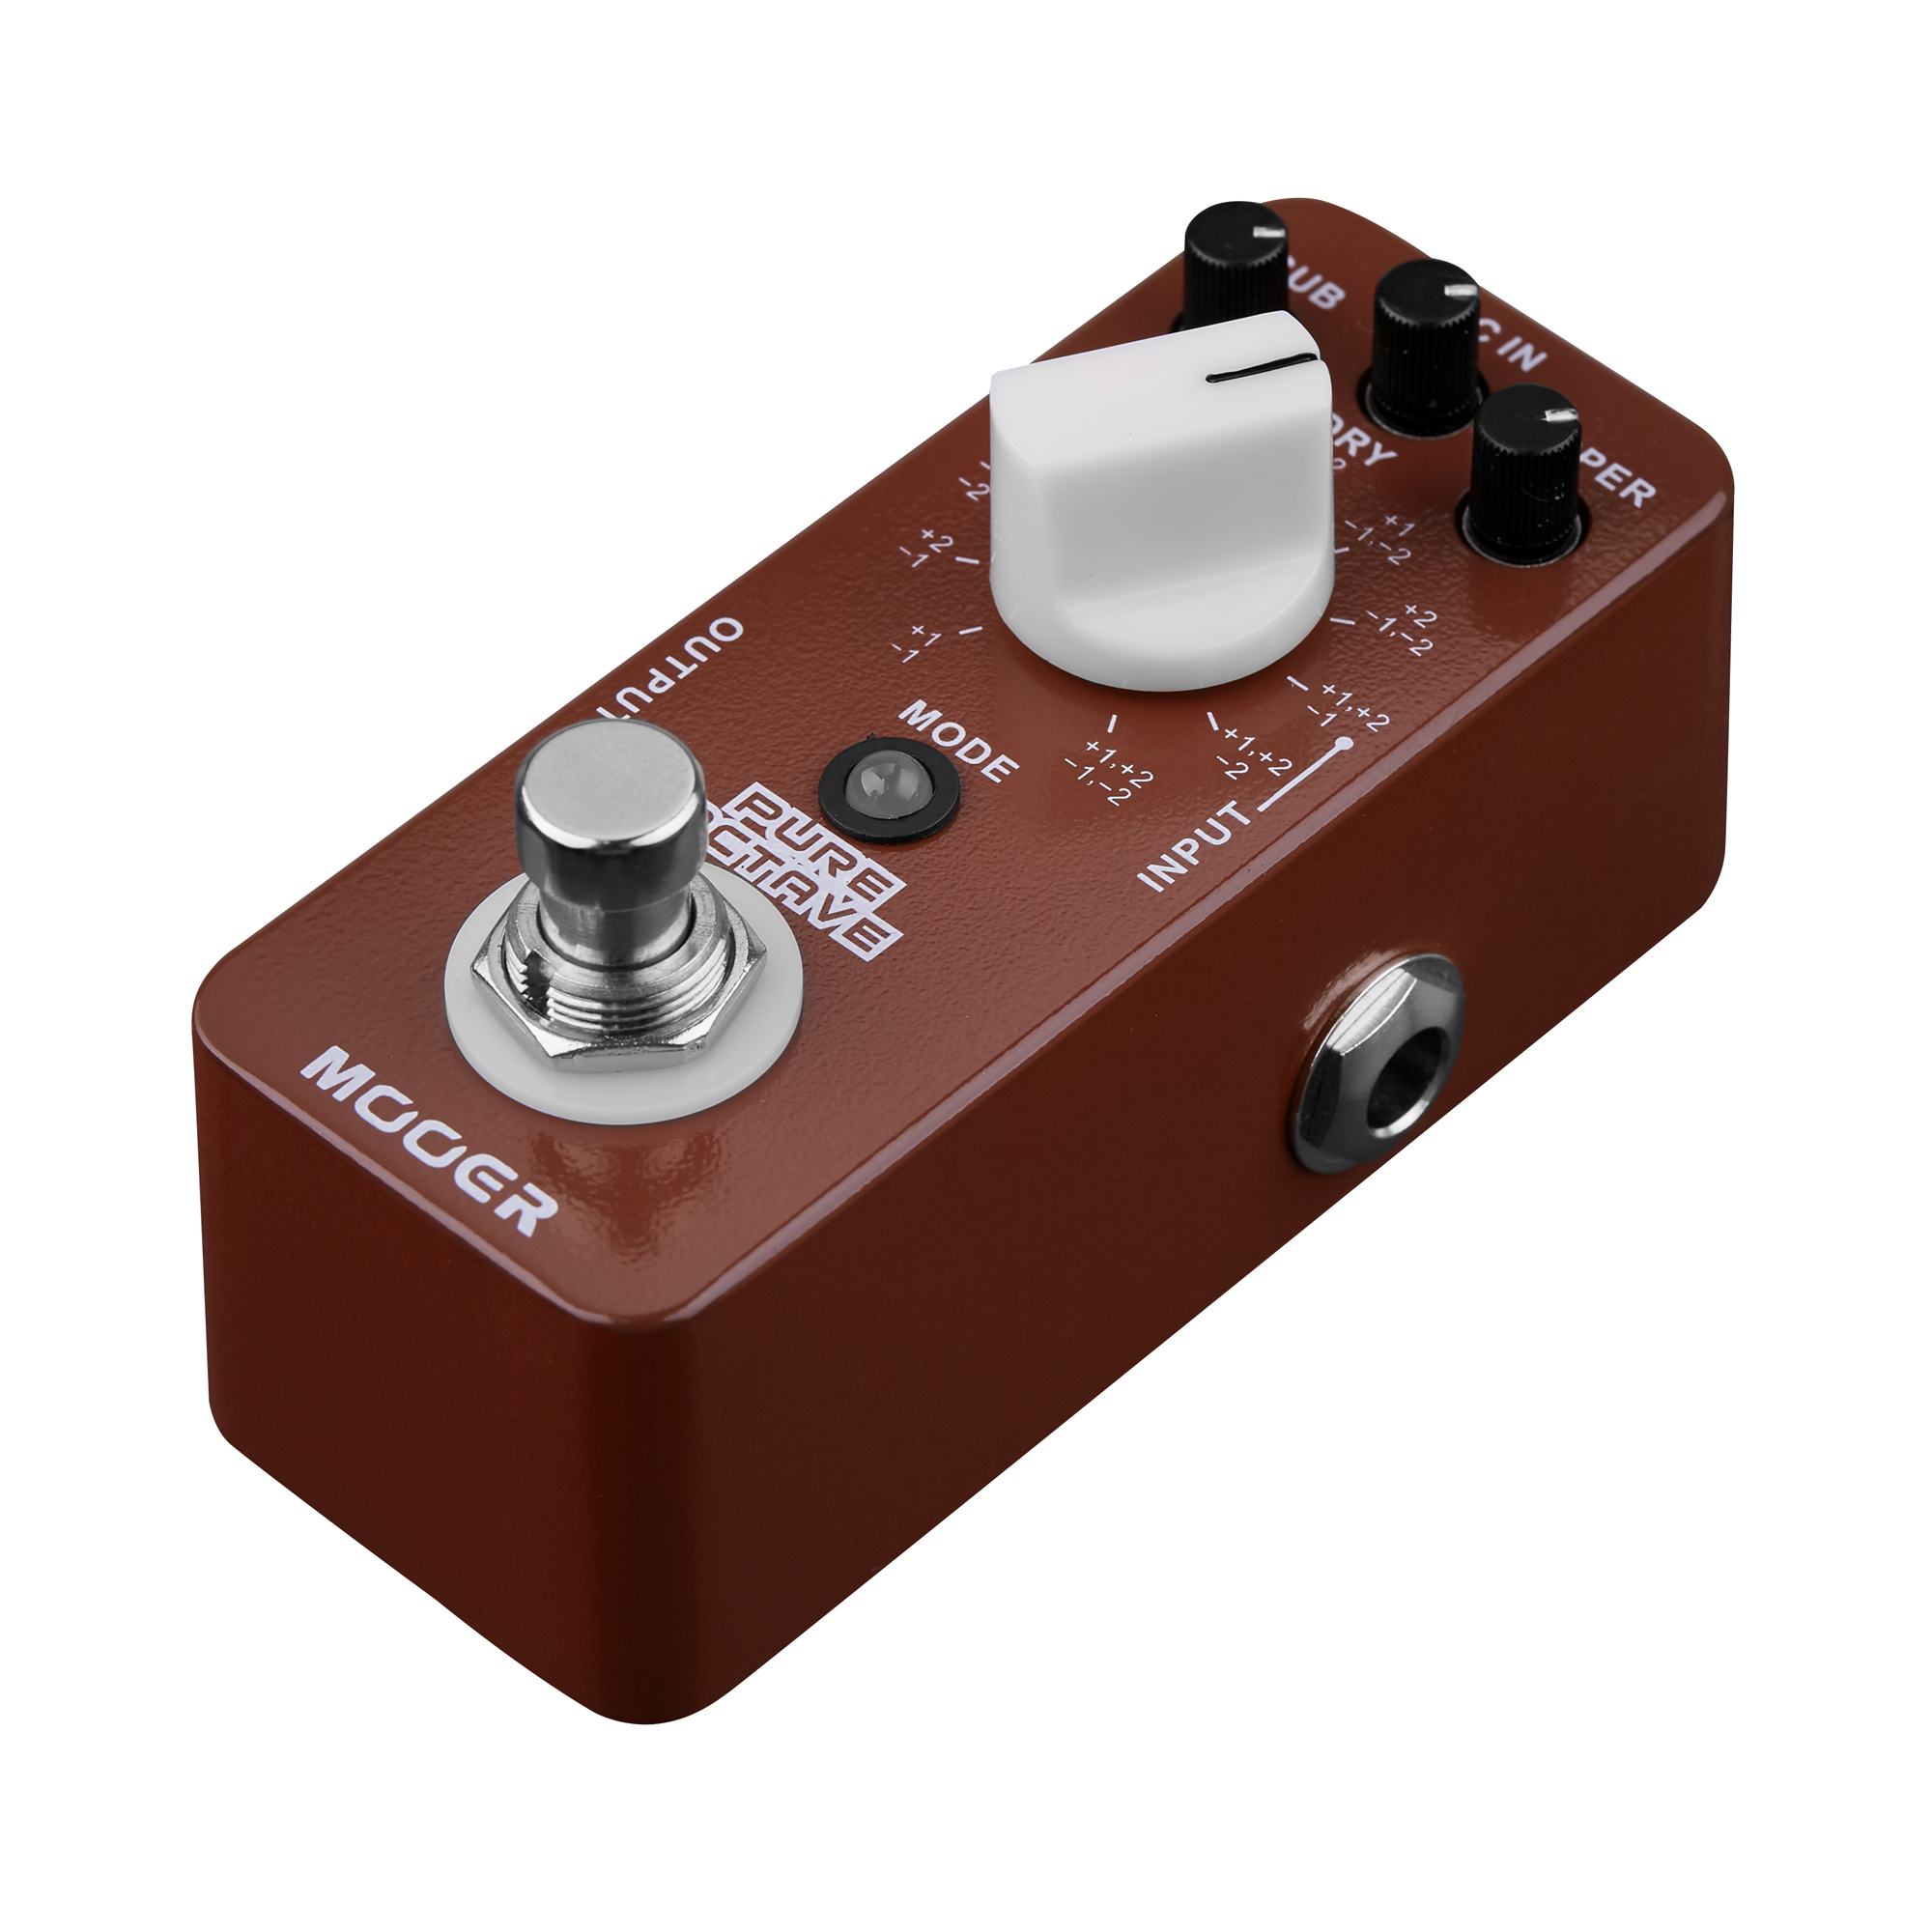 MOOER Pure Octave Electric Guitar Pedal True Bypass Metal Shell 11 Different Octave MOC1 mooer ensemble queen bass chorus effect pedal mini guitar effects true bypass with free connector and footswitch topper